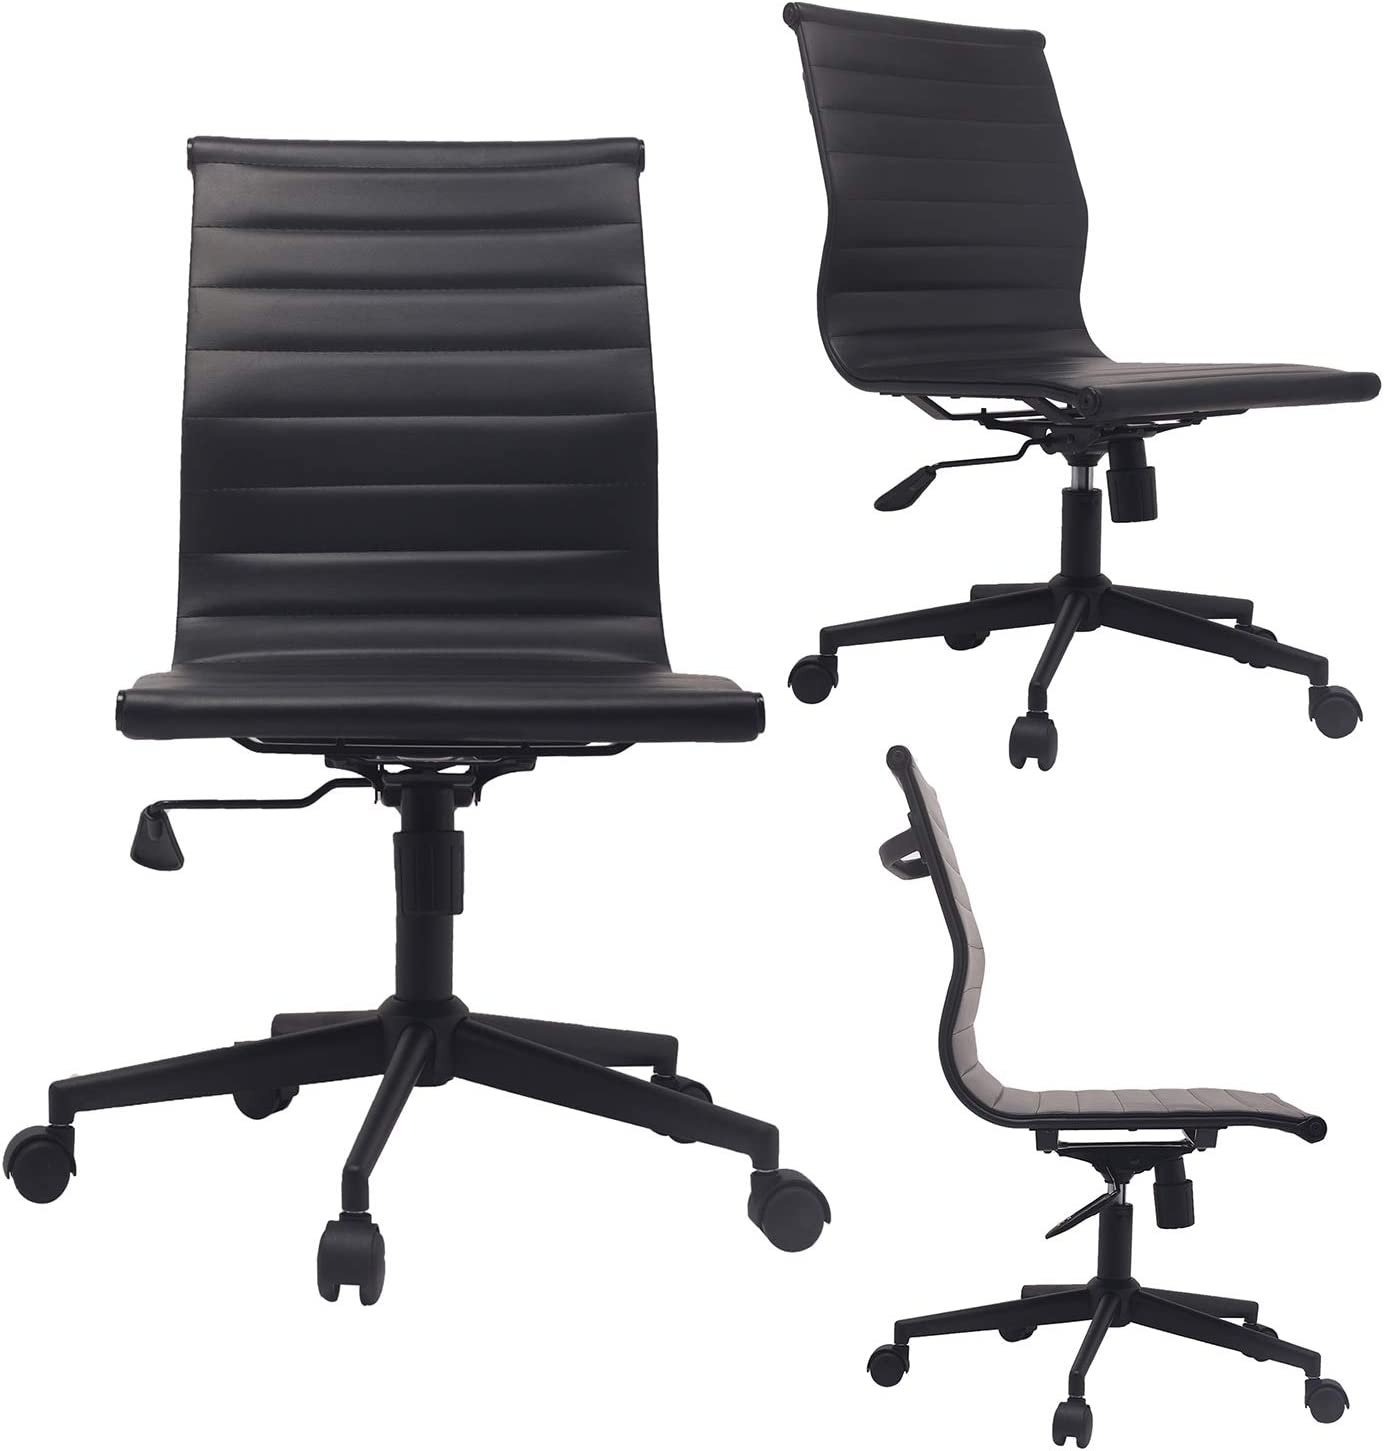 2xhome Modern Mid Back Office Chair Armless Ribbed PU Leather Swivel Tilt Adjustable Chair Designer Boss Executive Management Manager Office Conference Room Work Task Computer (All Black)